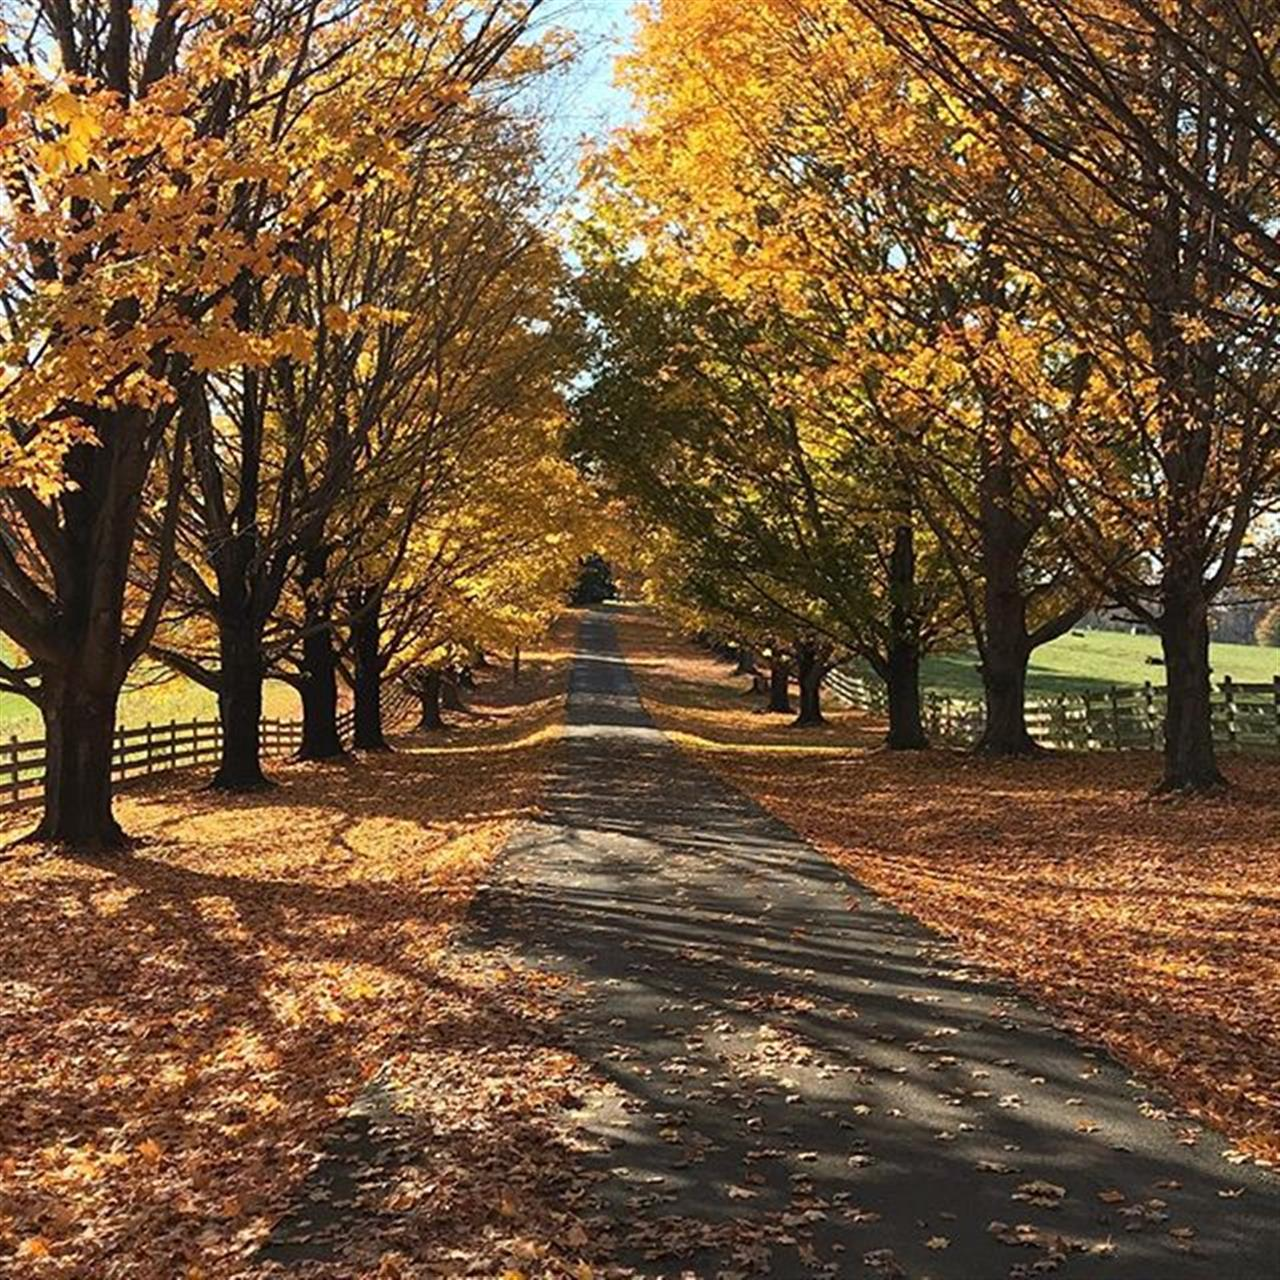 The wild world of real estate can lead you to beautiful places.  #nofilterneeded #fall #virginiaisforlovers #beautifulday #fallyall #foliage #serenity #realestate #realtor #shenandoahvalley #leadingre #virginia #nofilter ?? ??